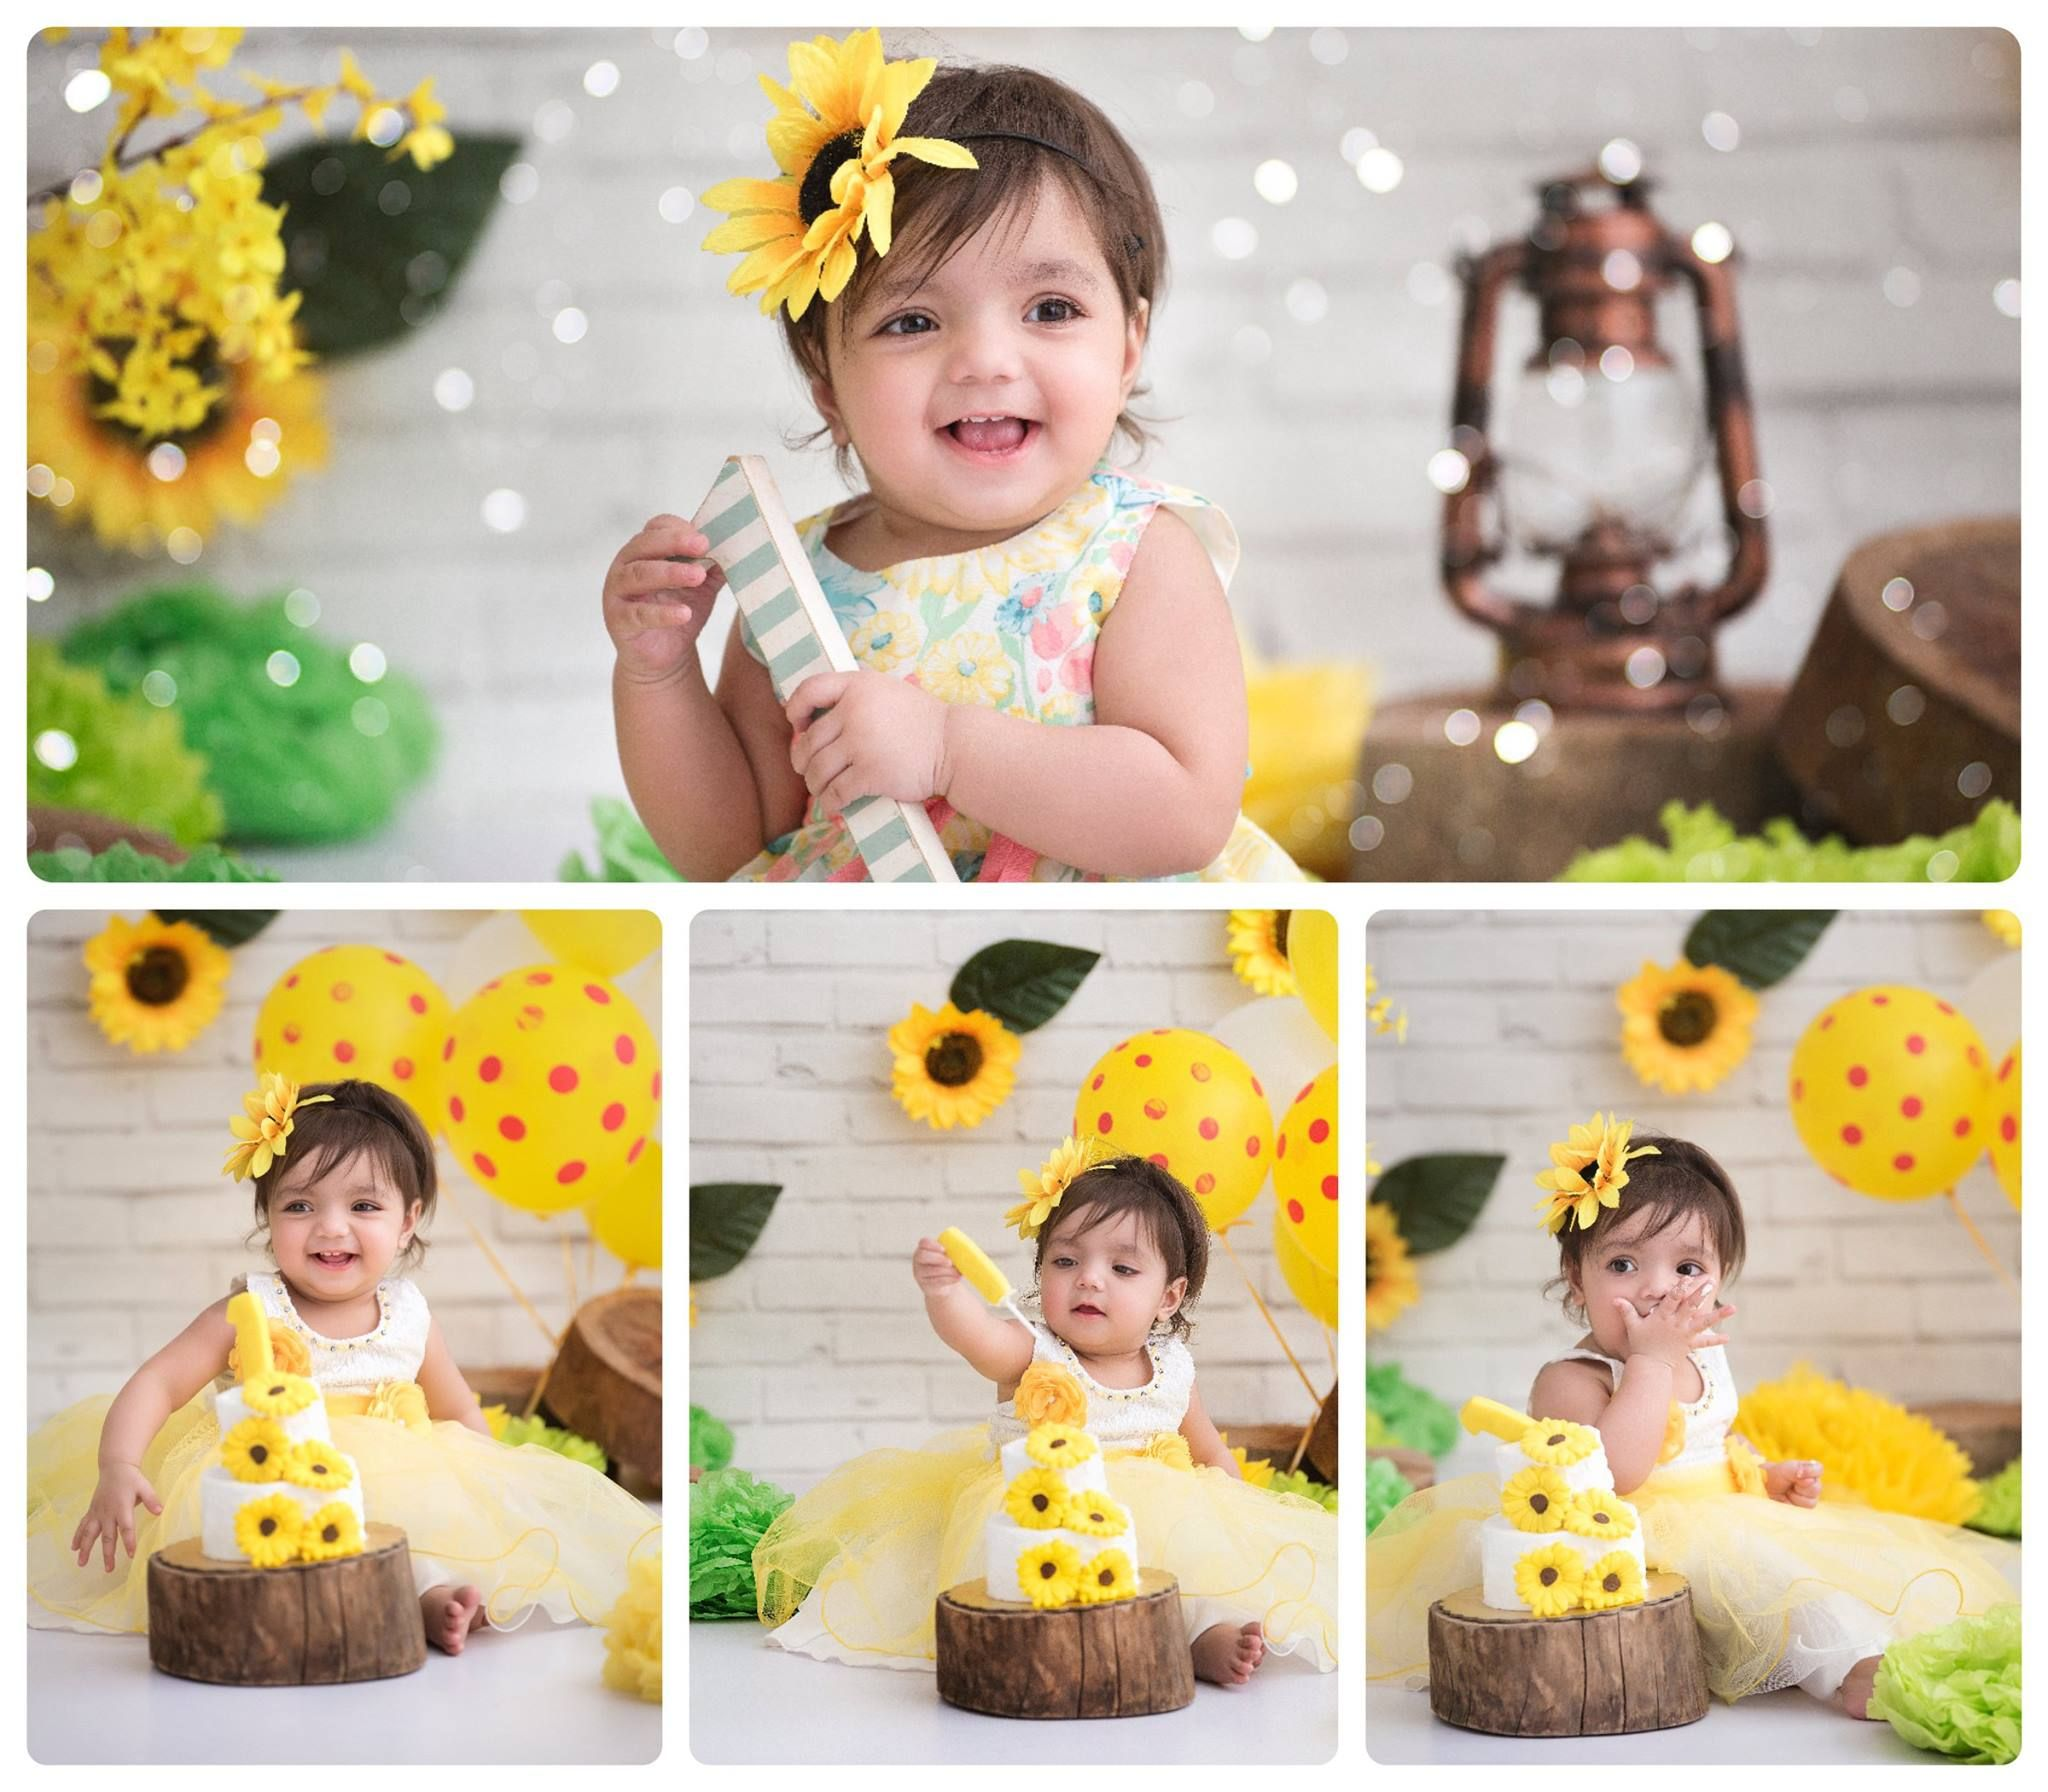 Sunflower theme cake smash first birthday shoot cake smash photography yellow cake sunflower cake shipra amit chhabra photography